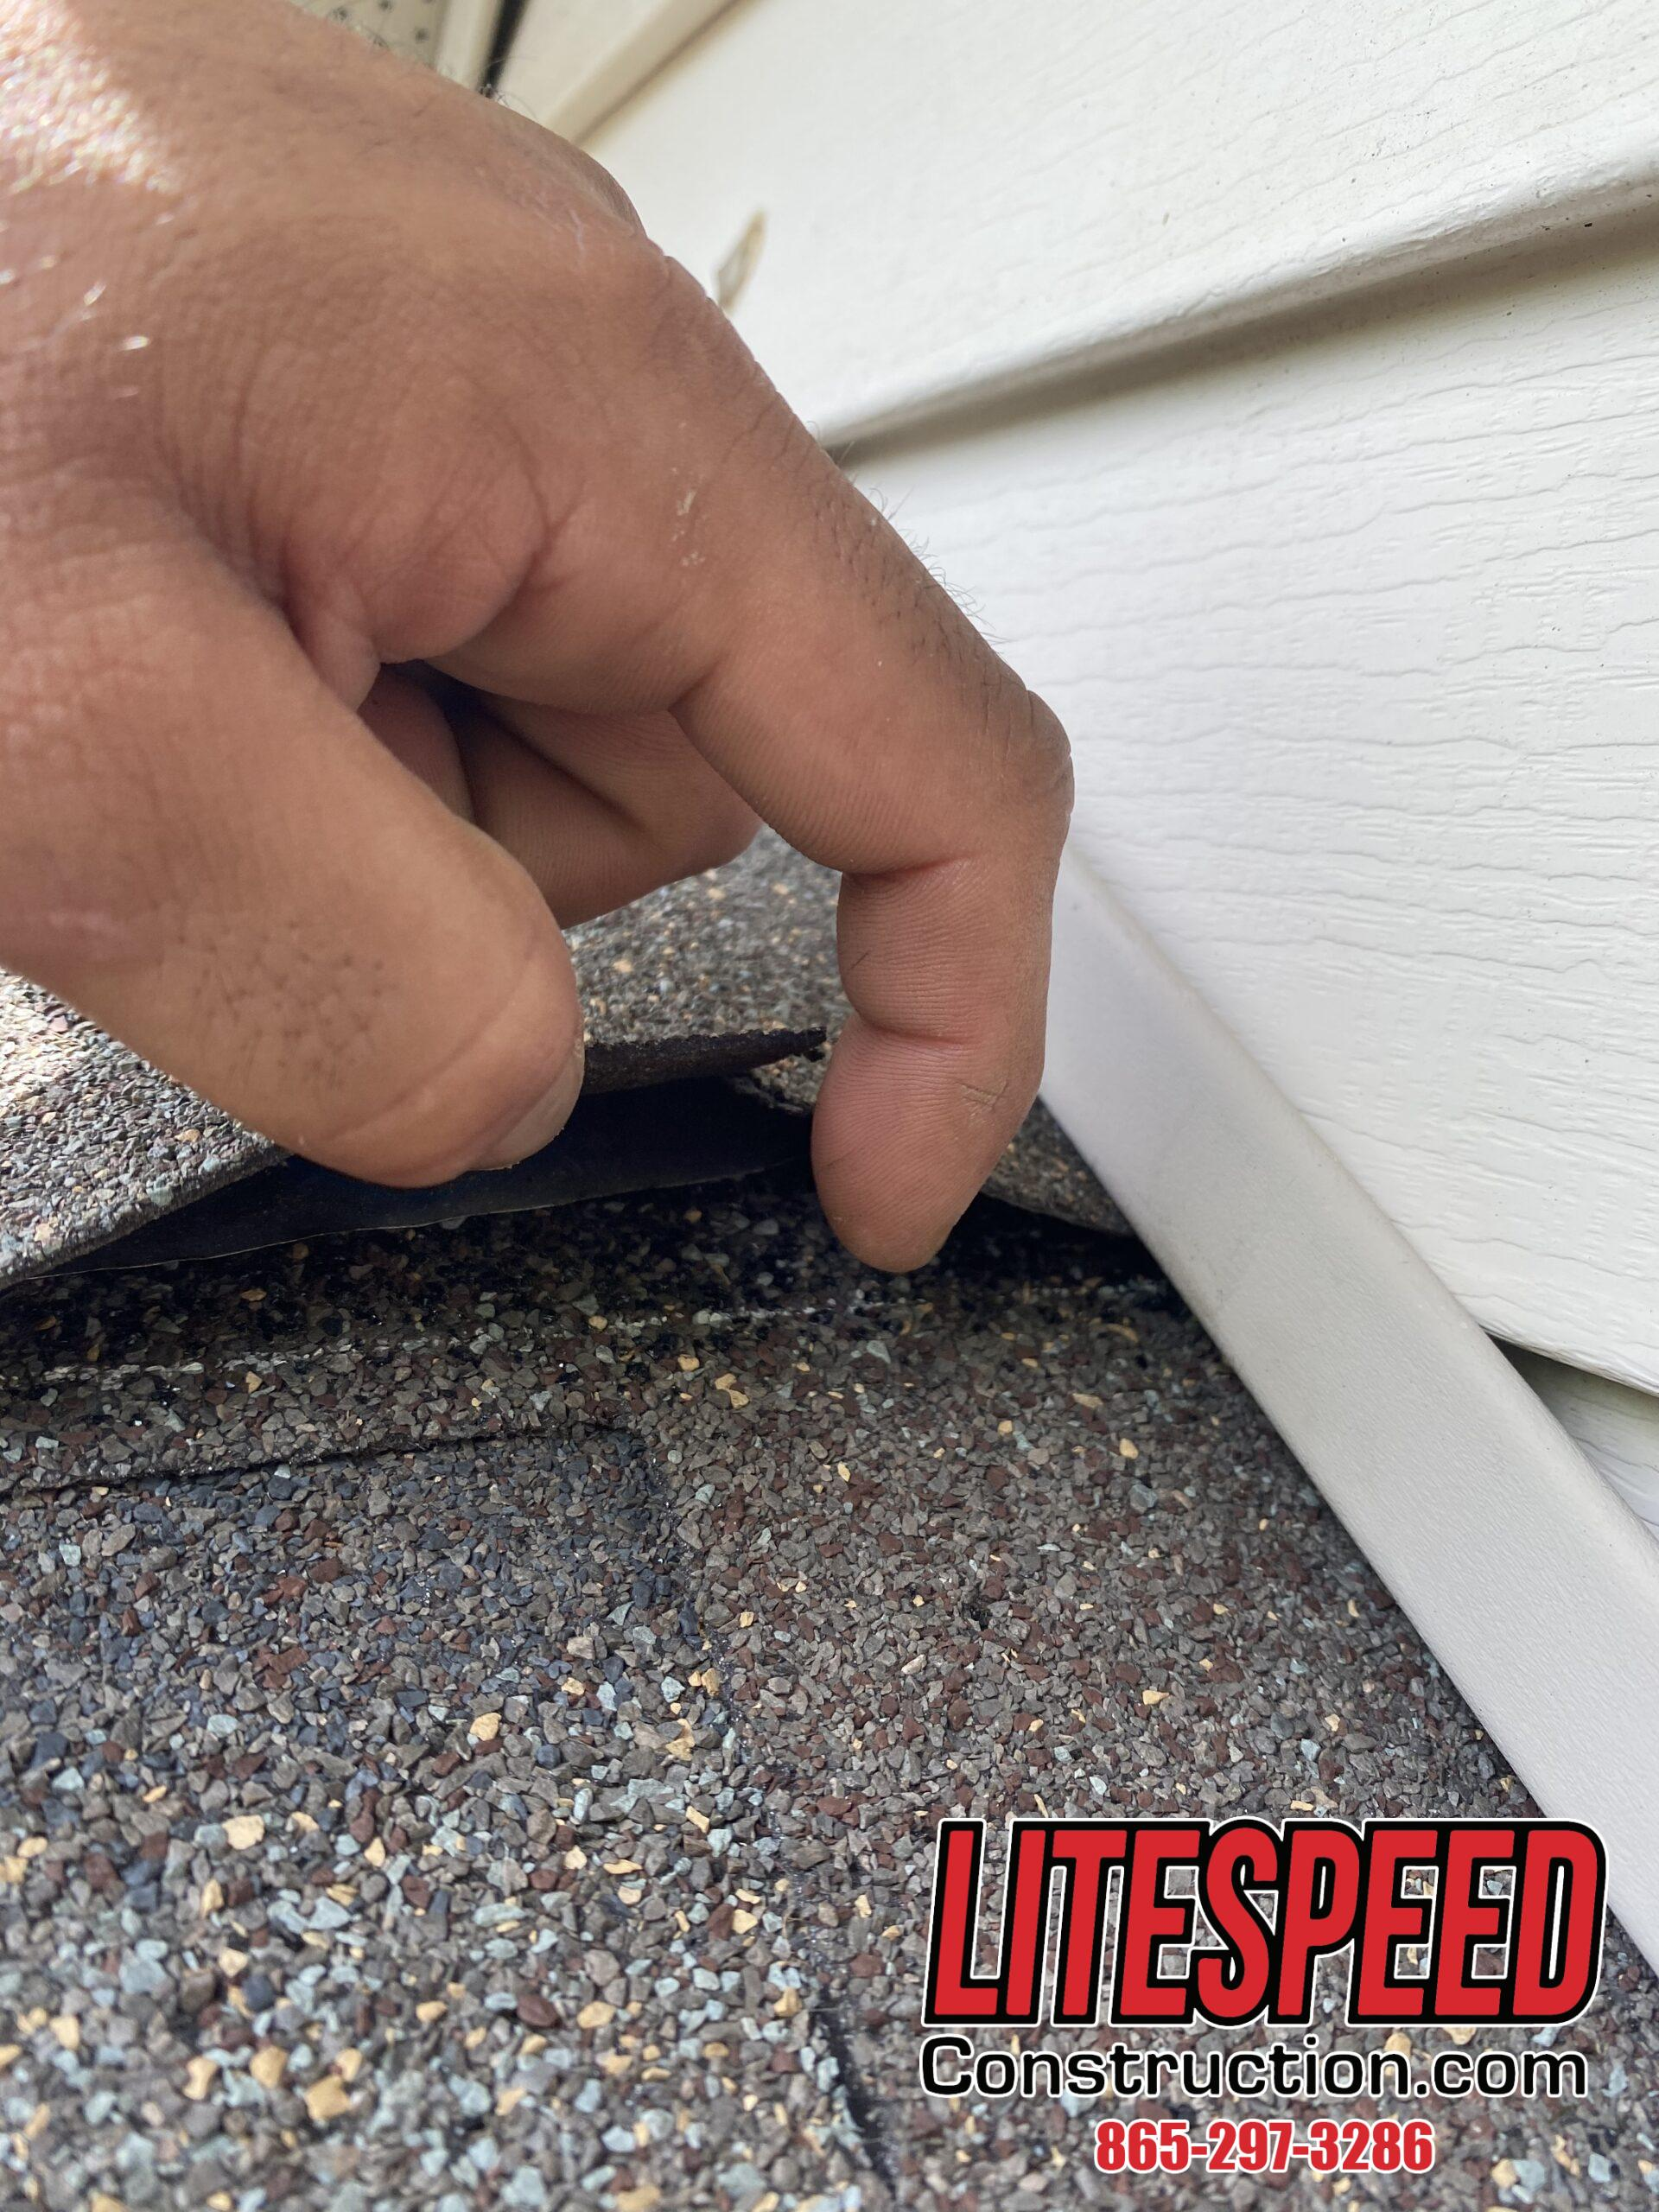 This is a picture of shingles at a wall with step flashing underneath